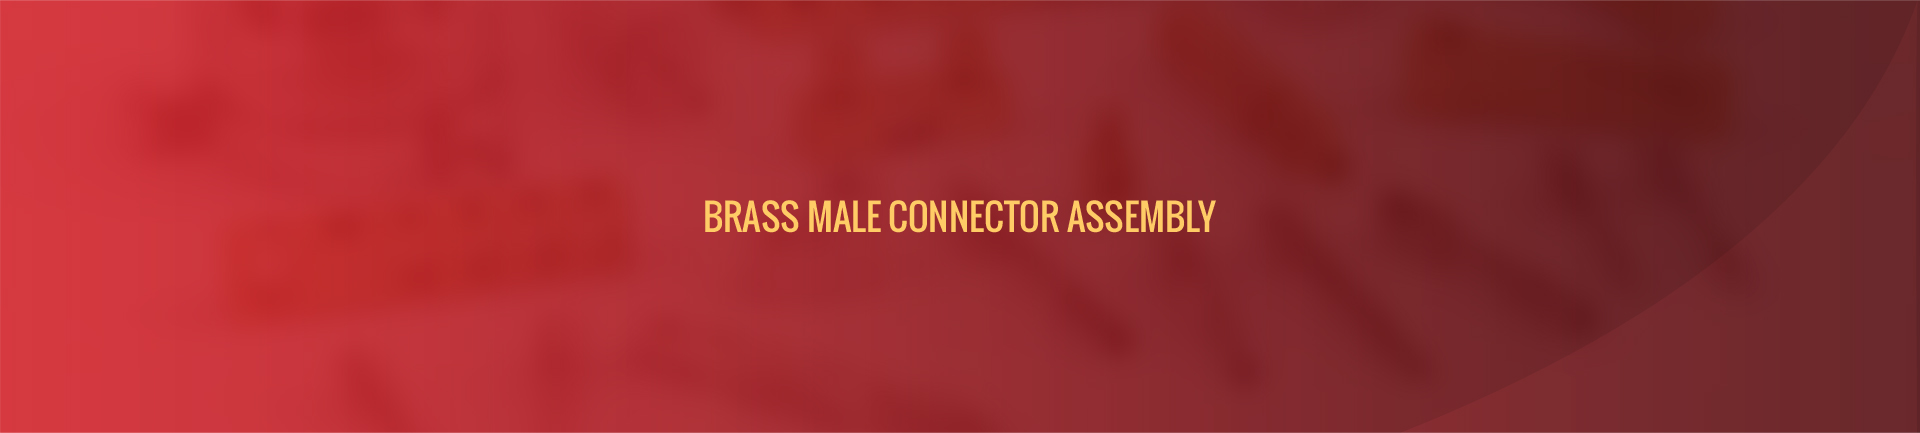 brass_male_connector_assembly-banner